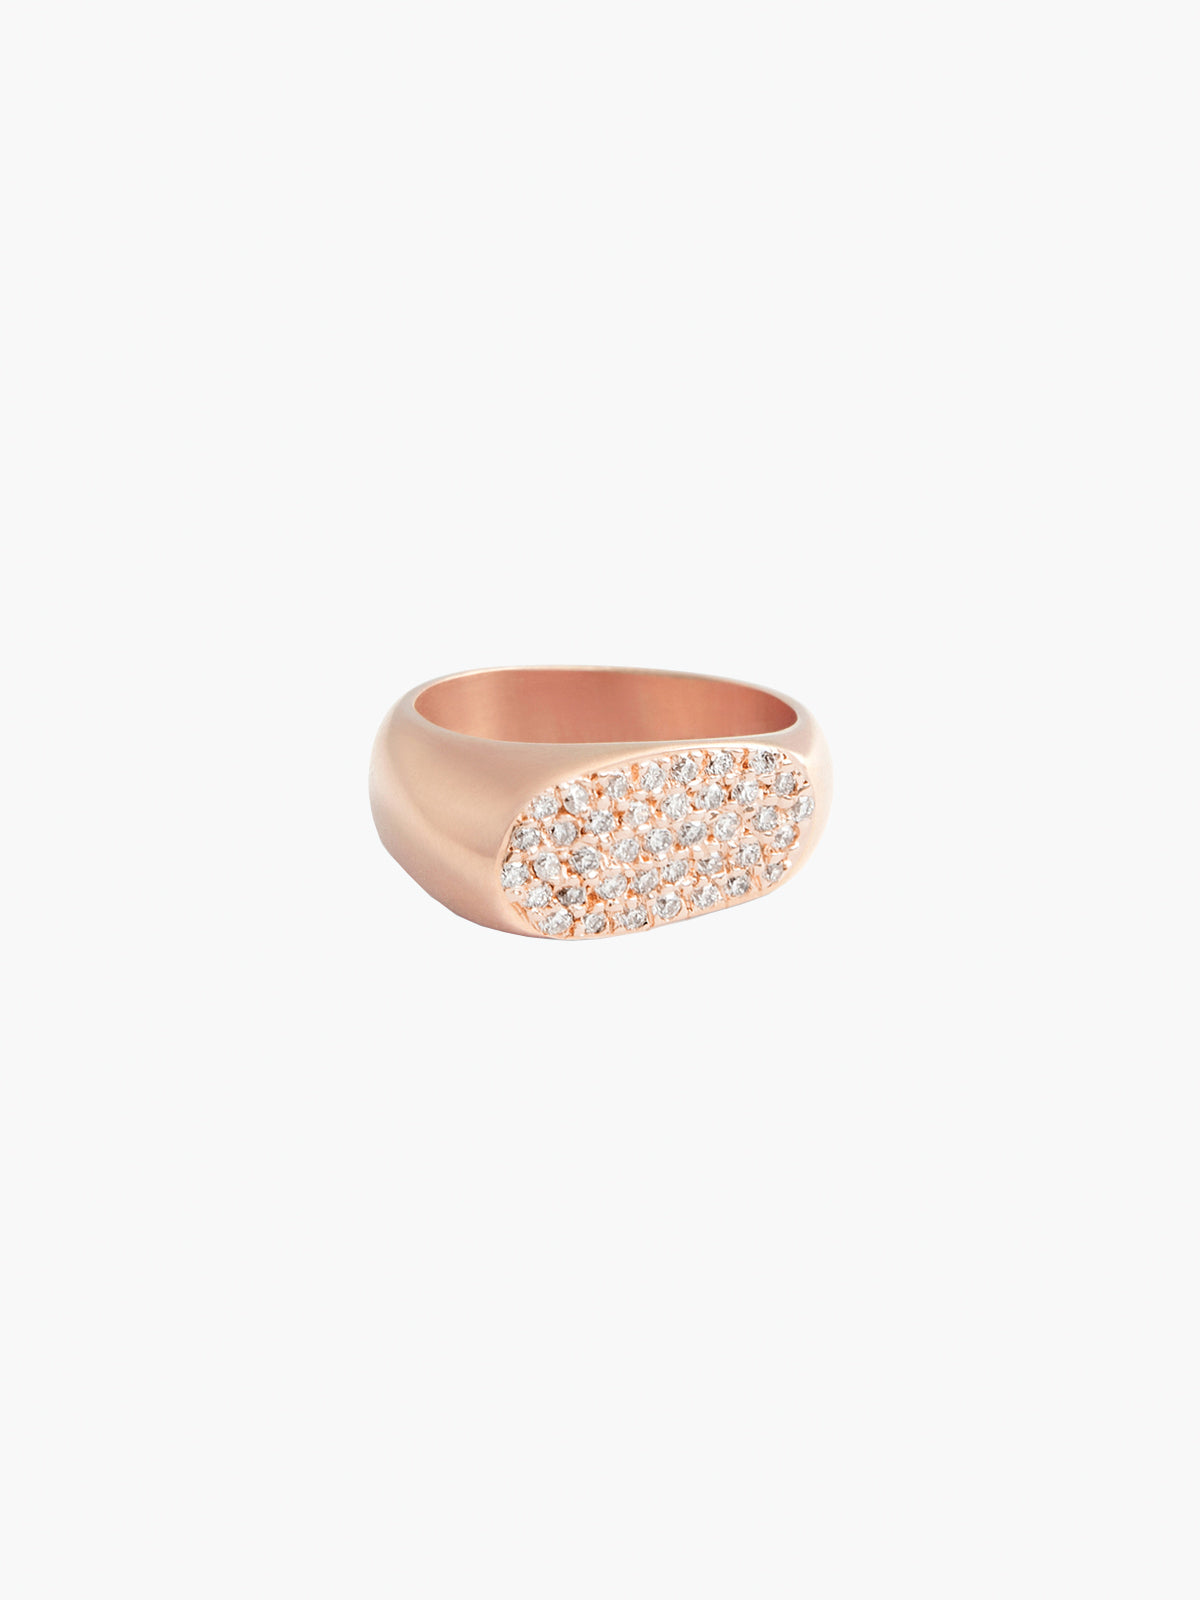 Lipstick Ring | Rose Gold Pave Lipstick Ring | Rose Gold Pave